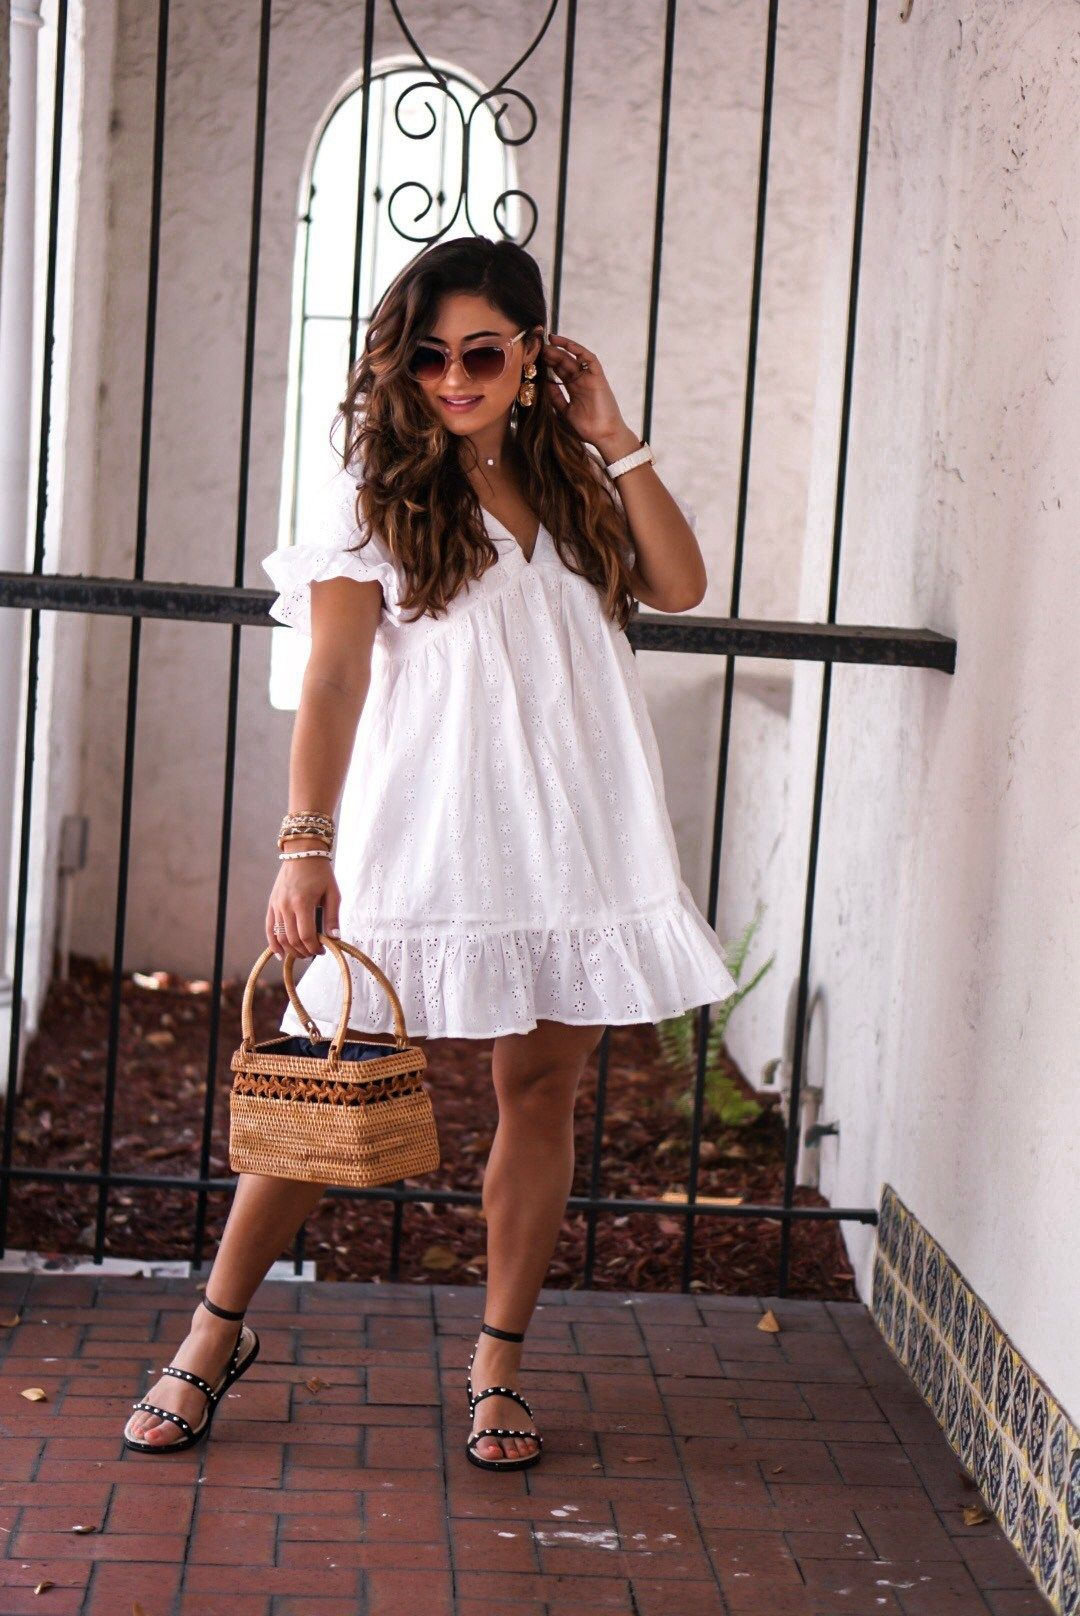 Affordable White Summer Sun Dress Outfit Krista Perez Of Sugar Love Chic White Dress Summer Maxi Dress Outfit Fall Curvy Outfits [ 1616 x 1080 Pixel ]